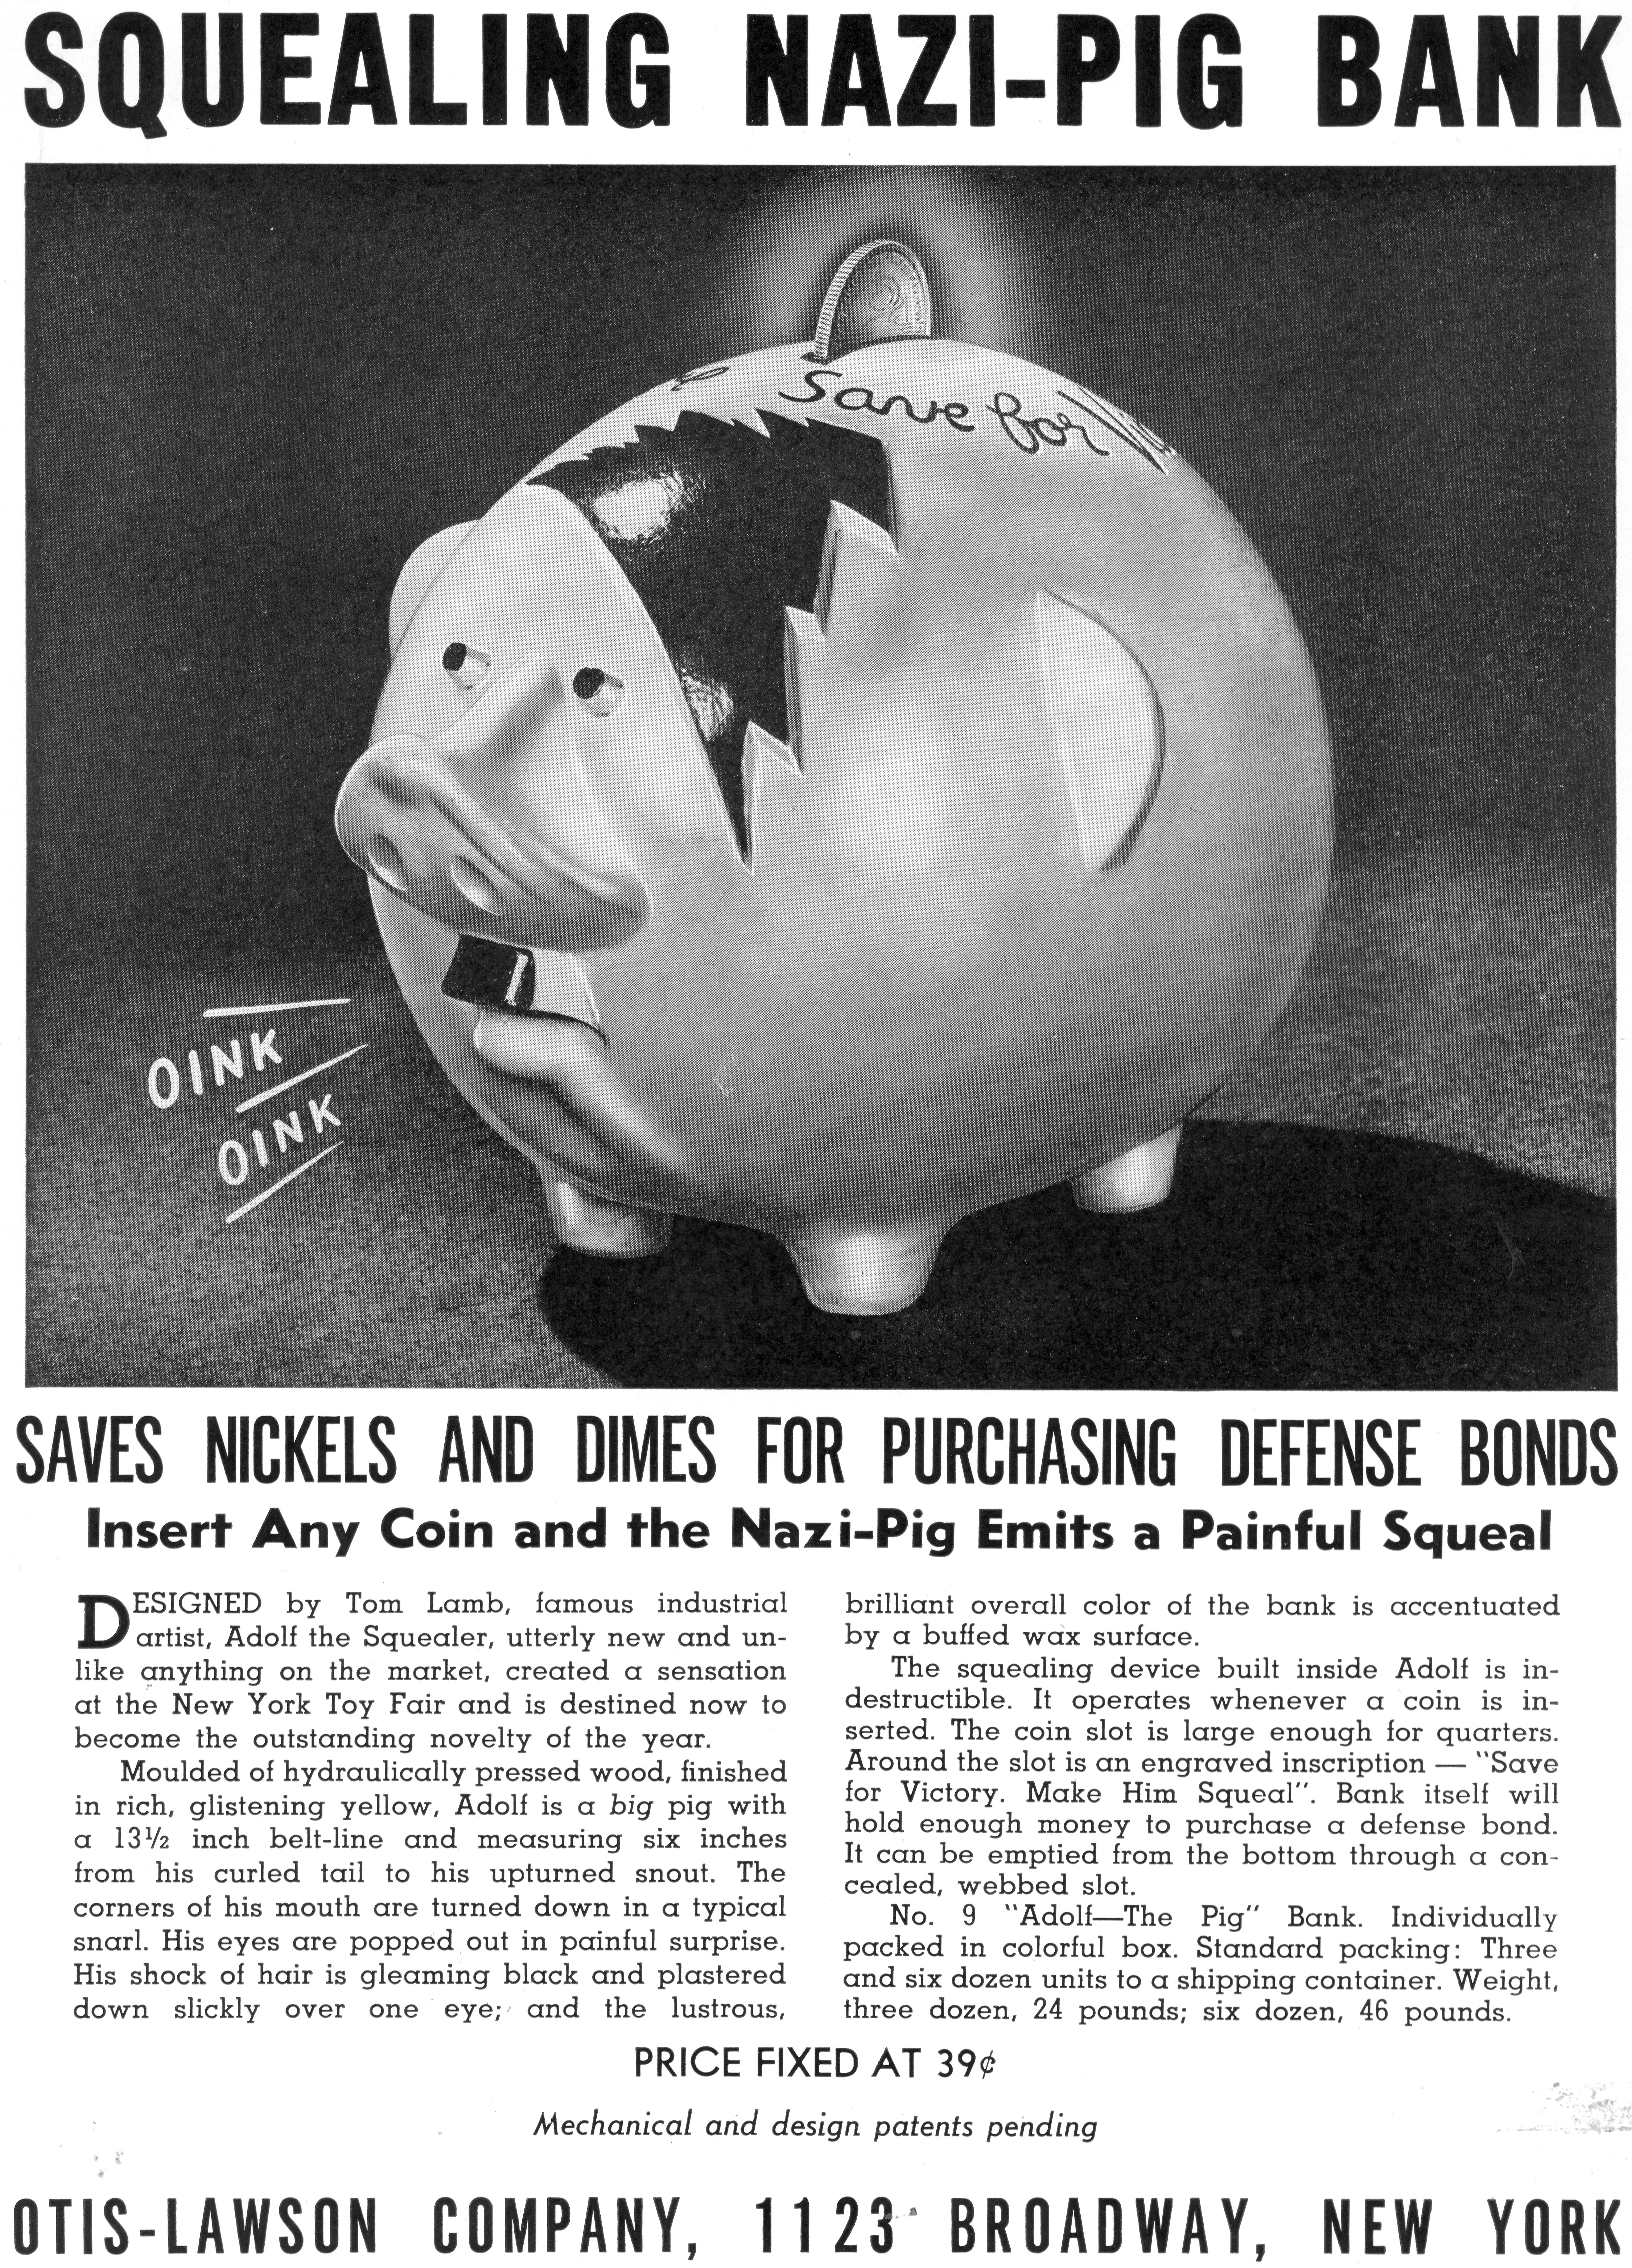 """Advertisement for a """"squealing Nazi"""" piggy bank styled after Adolph Hitler."""